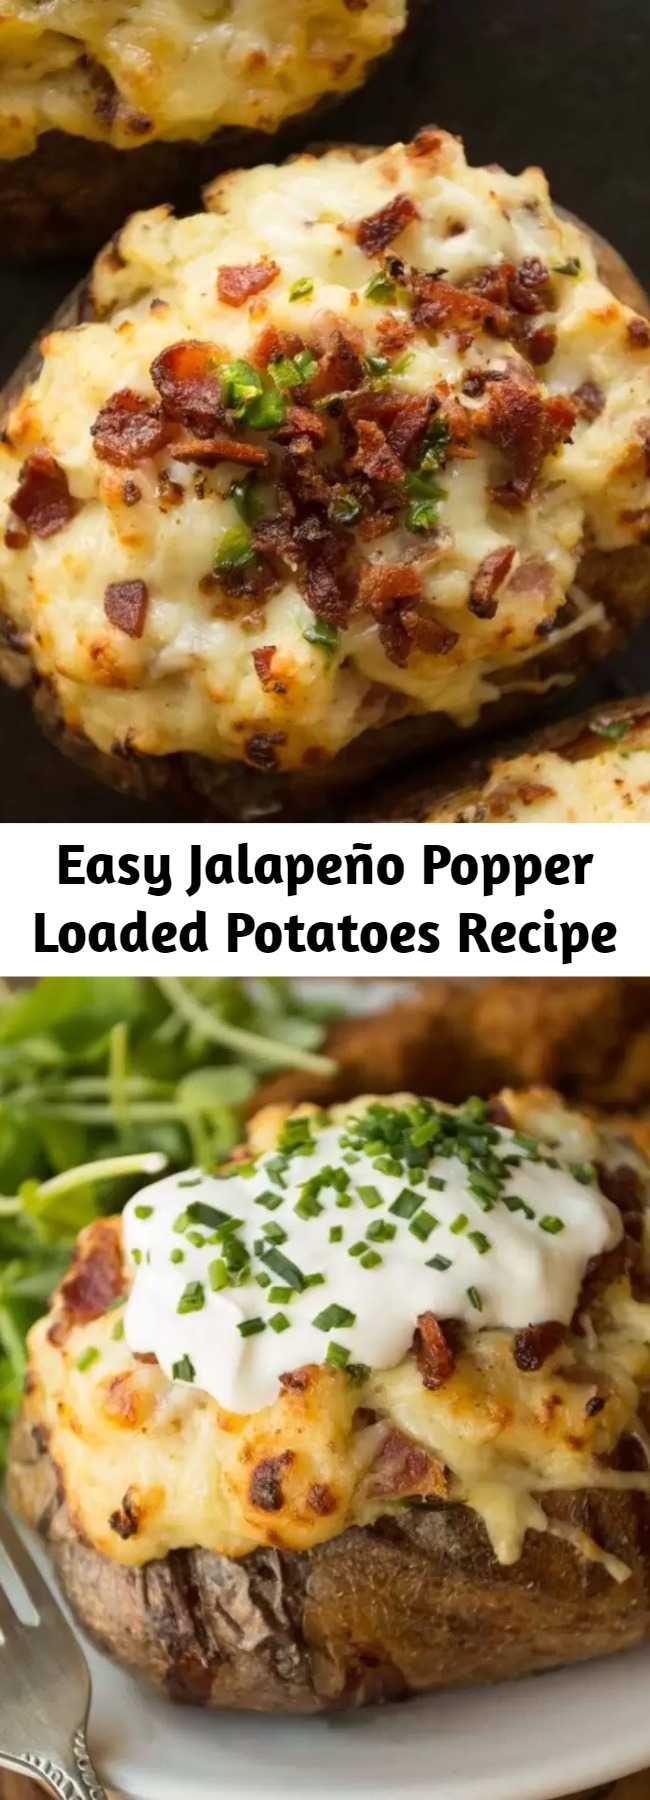 Easy Jalapeño Popper Loaded Potatoes Recipe - When two worlds collide - Twice Baked Potatoes loaded with a creamy dreamy Jalapeño Popper filling. Food comas have never been more delicious! #jalapeno #jalapenopopper #potato #bakedpotato #loadedpotato